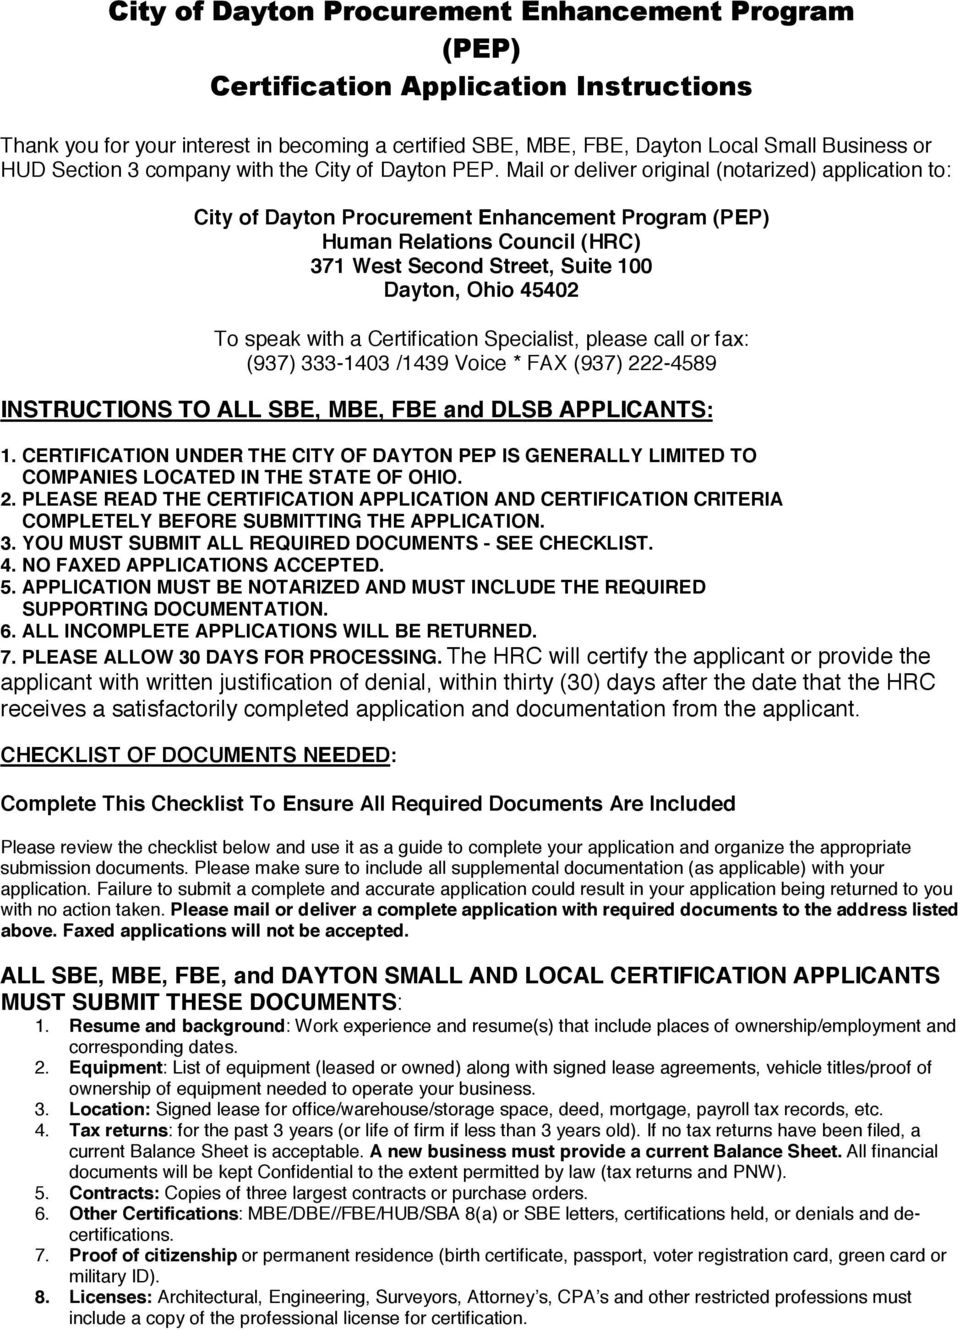 Mail or deliver original (notarized) application to: City of Dayton Procurement Enhancement Program (PEP) Human Relations Council (HRC) 371 West Second Street, Suite 100 Dayton, Ohio 45402 To speak